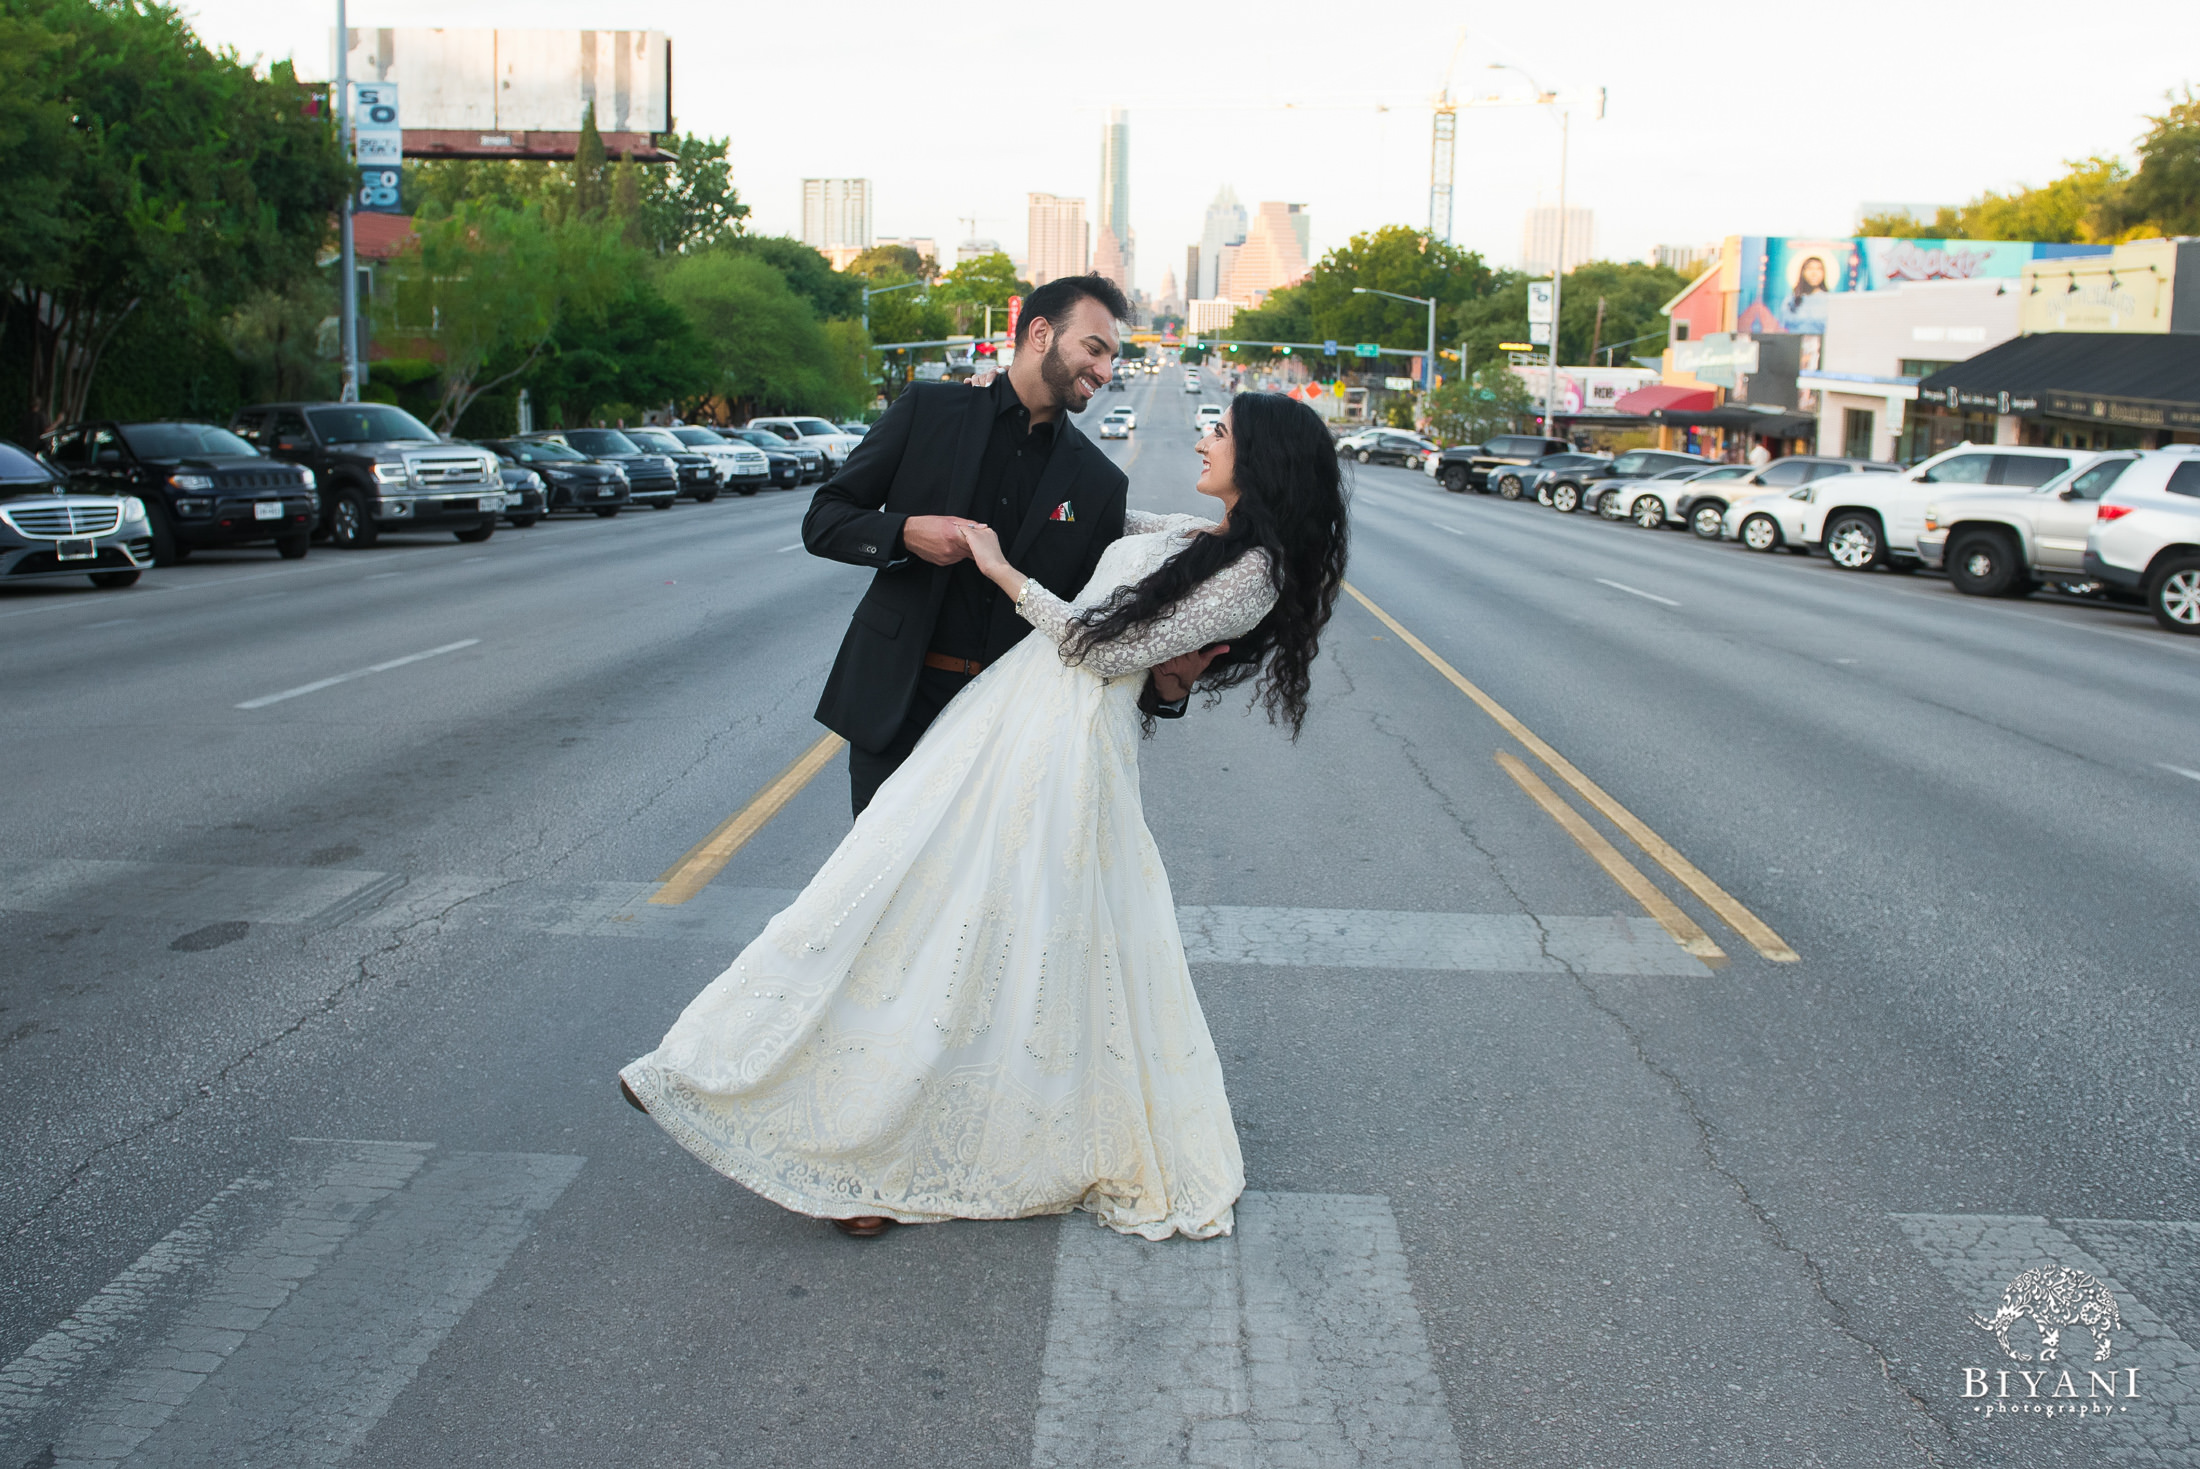 bride being dipped by groom in the middle of intersection with Austin city Capital in background